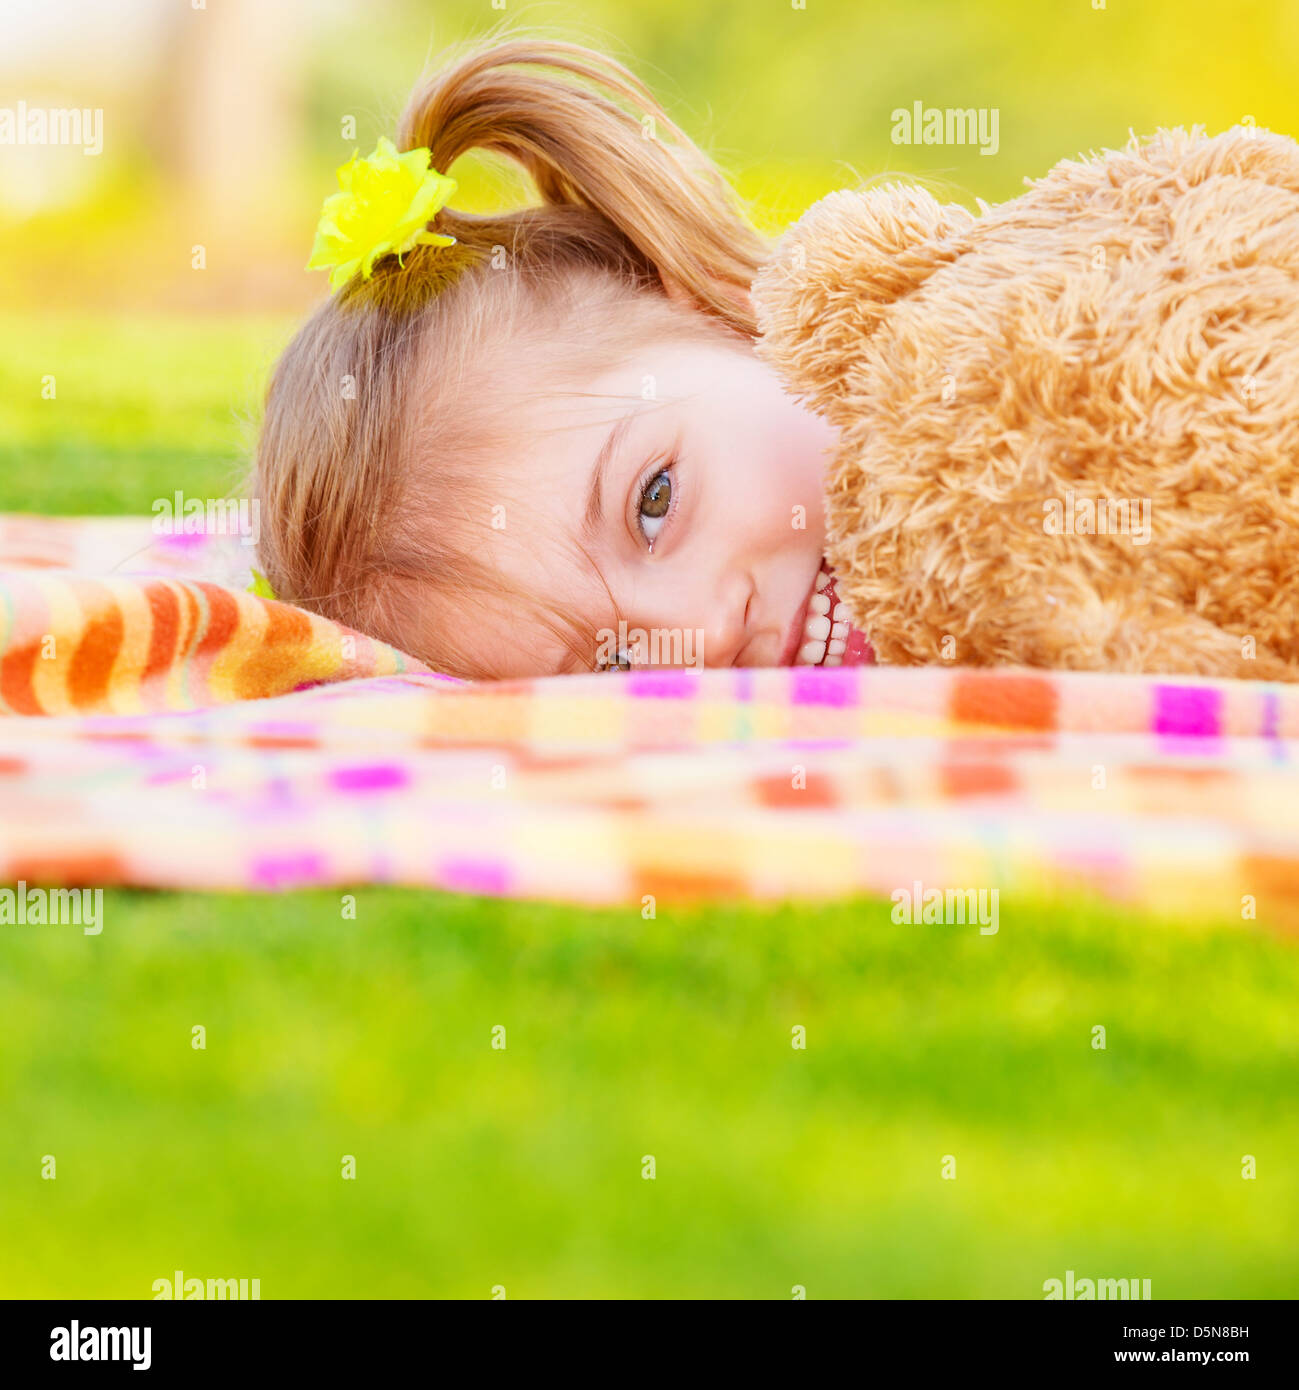 Pretty small girl lying down on green field, playing game with big brown teddy bear, cute child enjoying spring - Stock Image